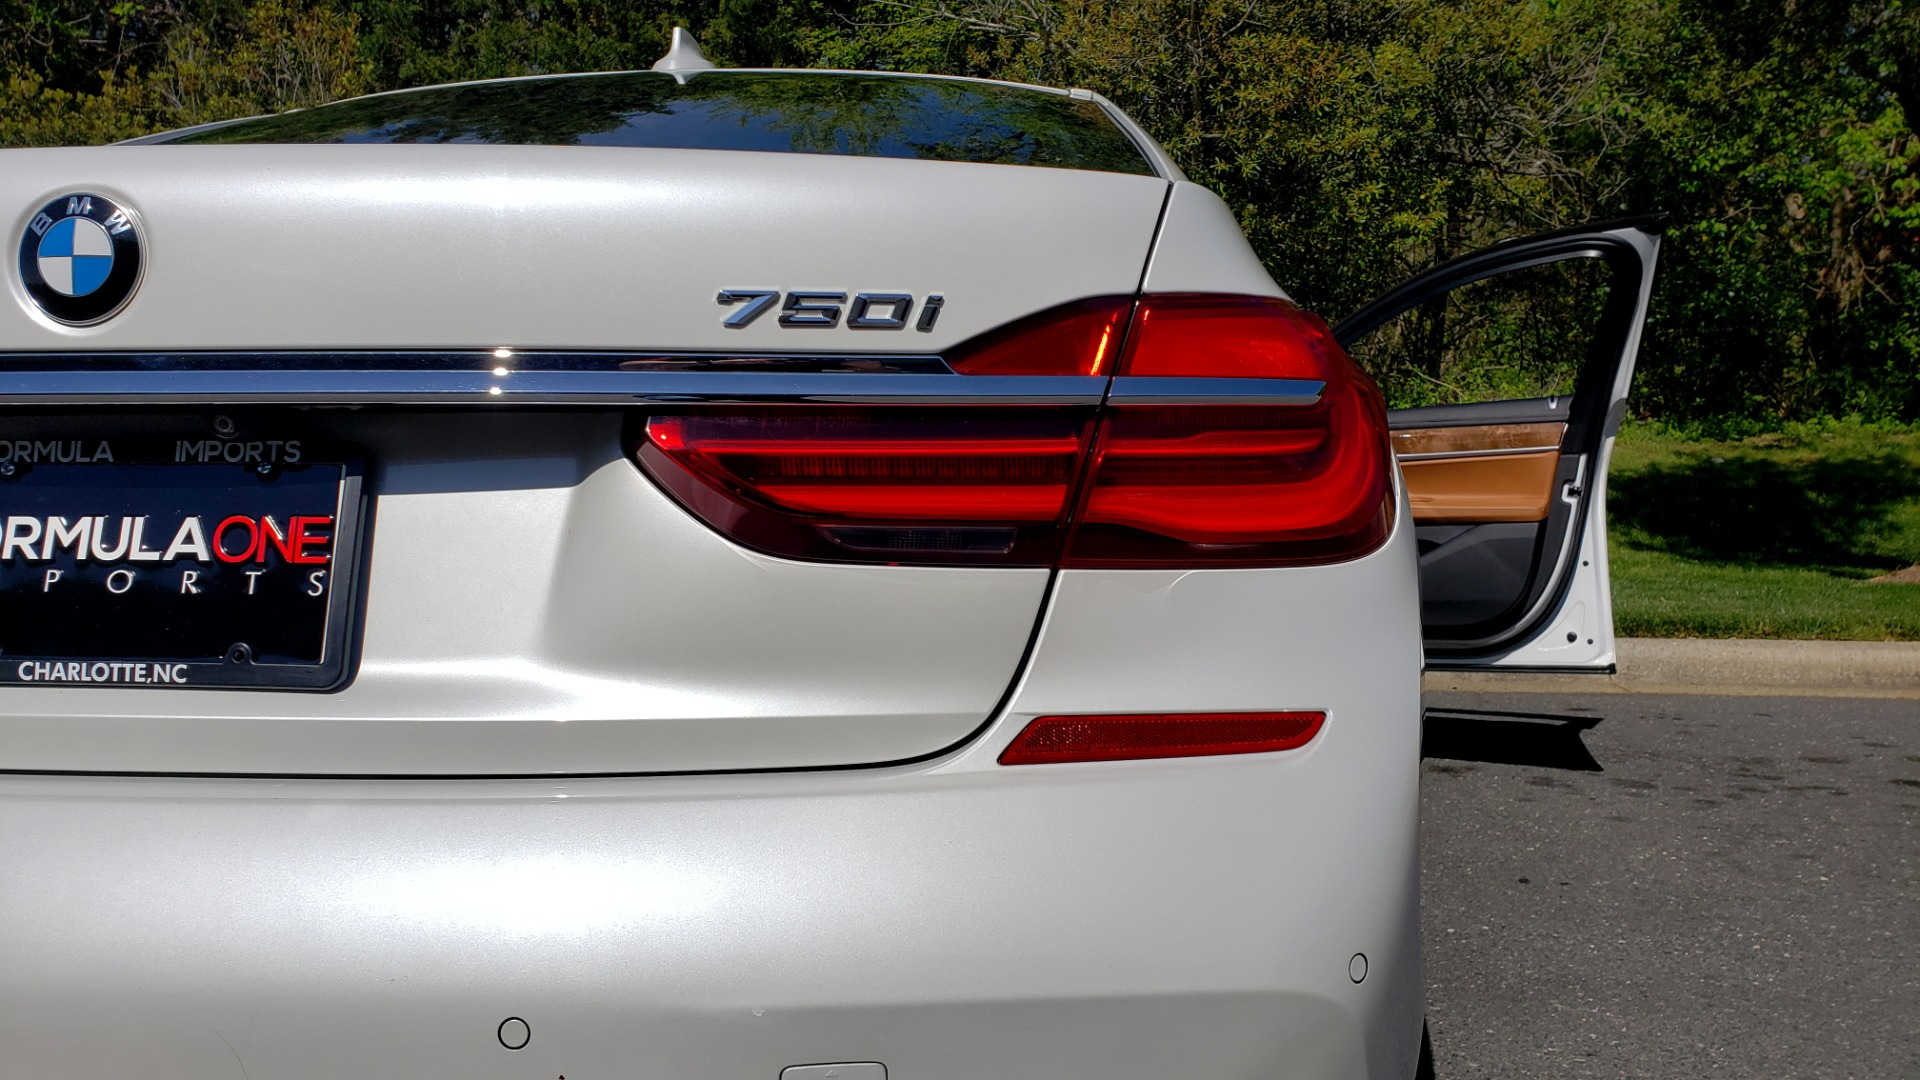 Used 2017 BMW 7 SERIES 750I XDRIVE / M-SPORT / EXEC PKG / DRVR ASST PLUS II / CLD WTHR for sale $48,495 at Formula Imports in Charlotte NC 28227 25